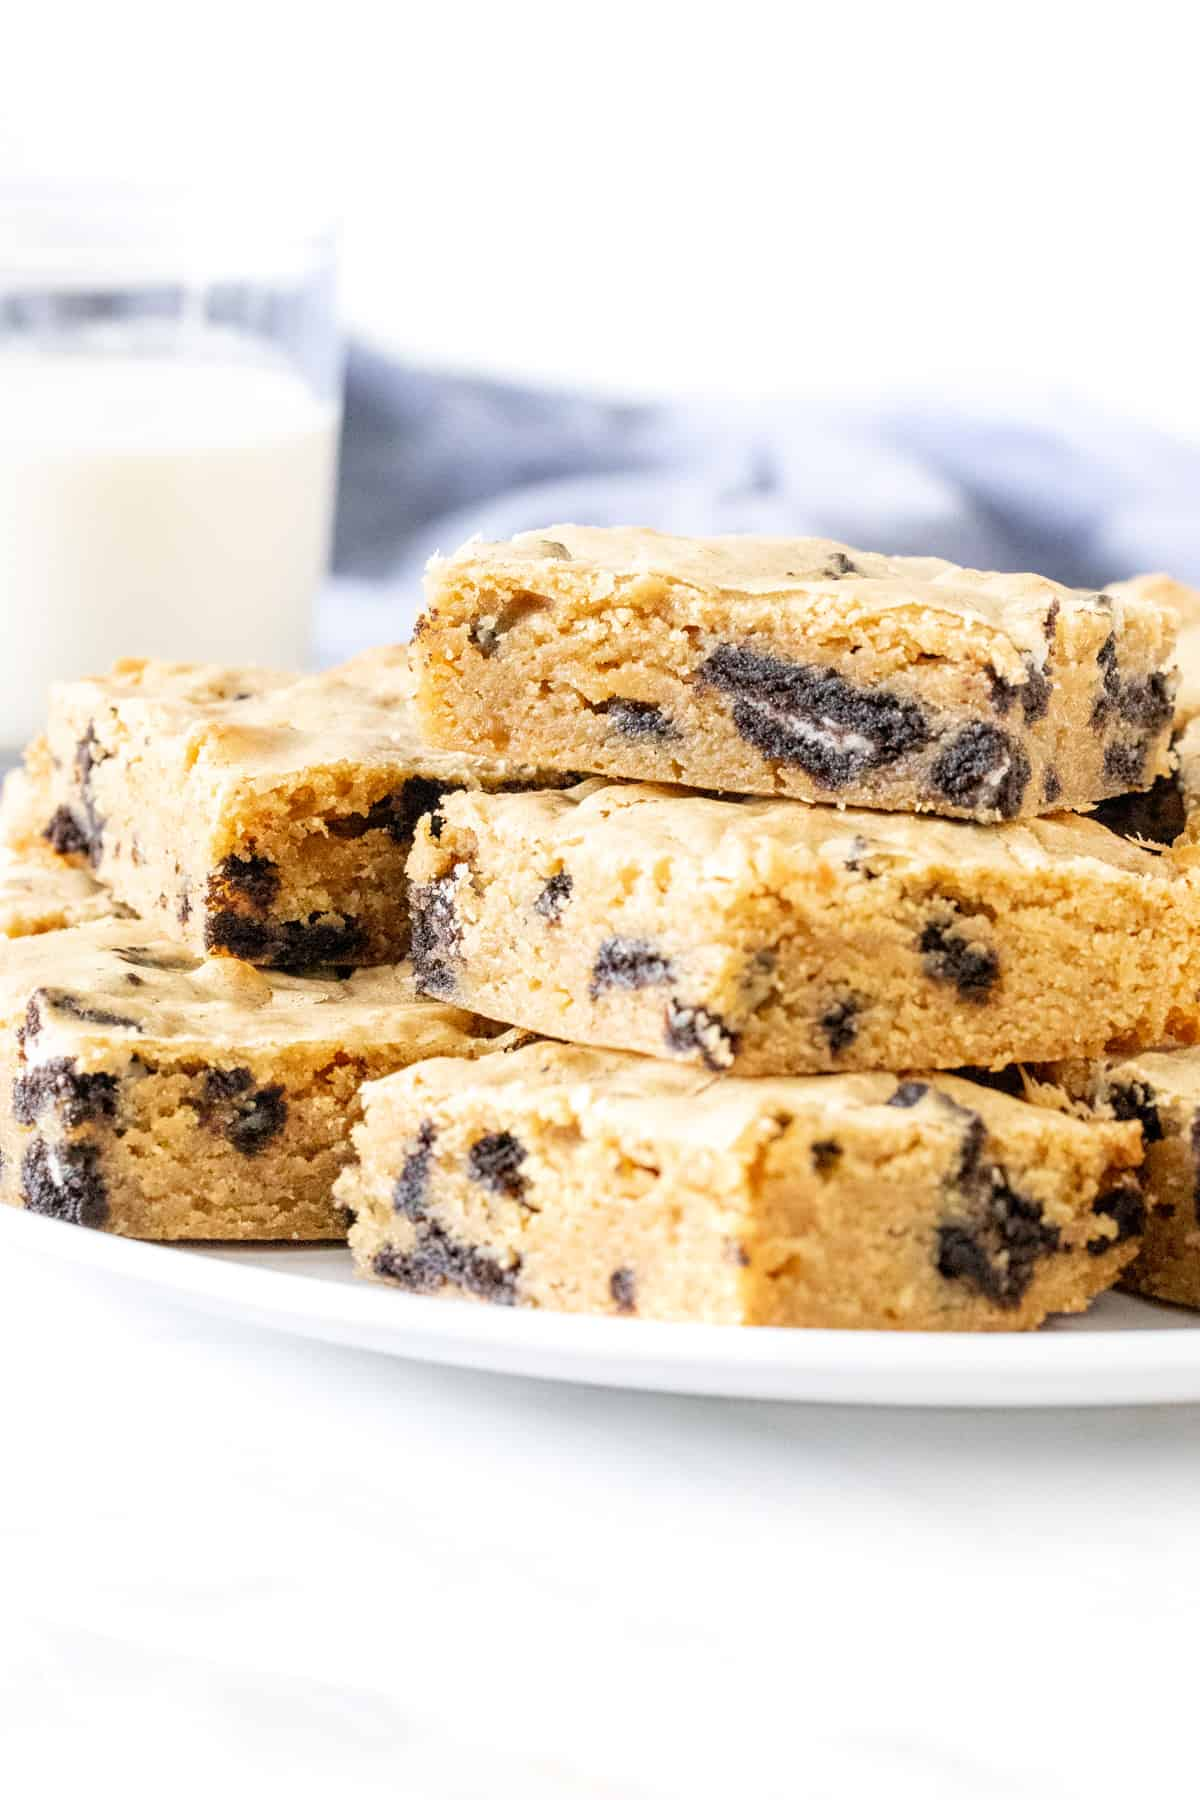 Plate of Oreo blondies stacked on top of each other.